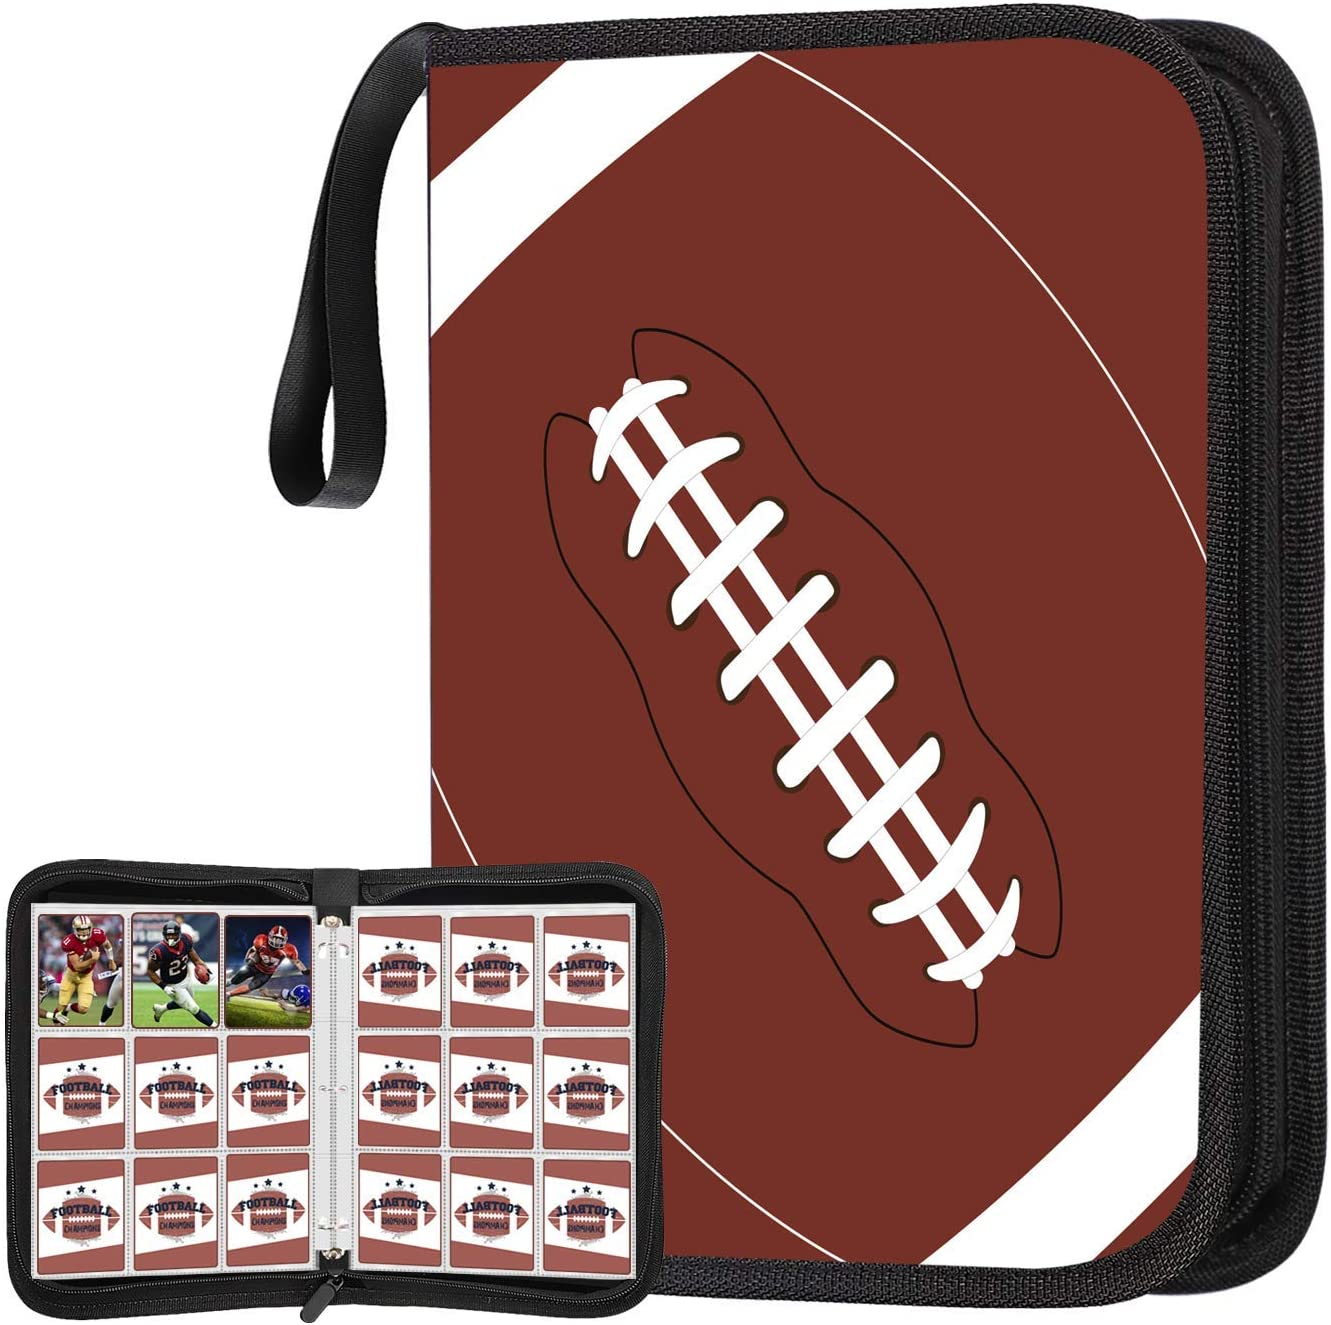 CLOVERCAT Double Sided 50 Pages 4 Pockets Card Binder for Sport Trading Cards Display Case with Sleeves Card Holder Protectors Set for Sports Card Holds 400 Cards Football Brown